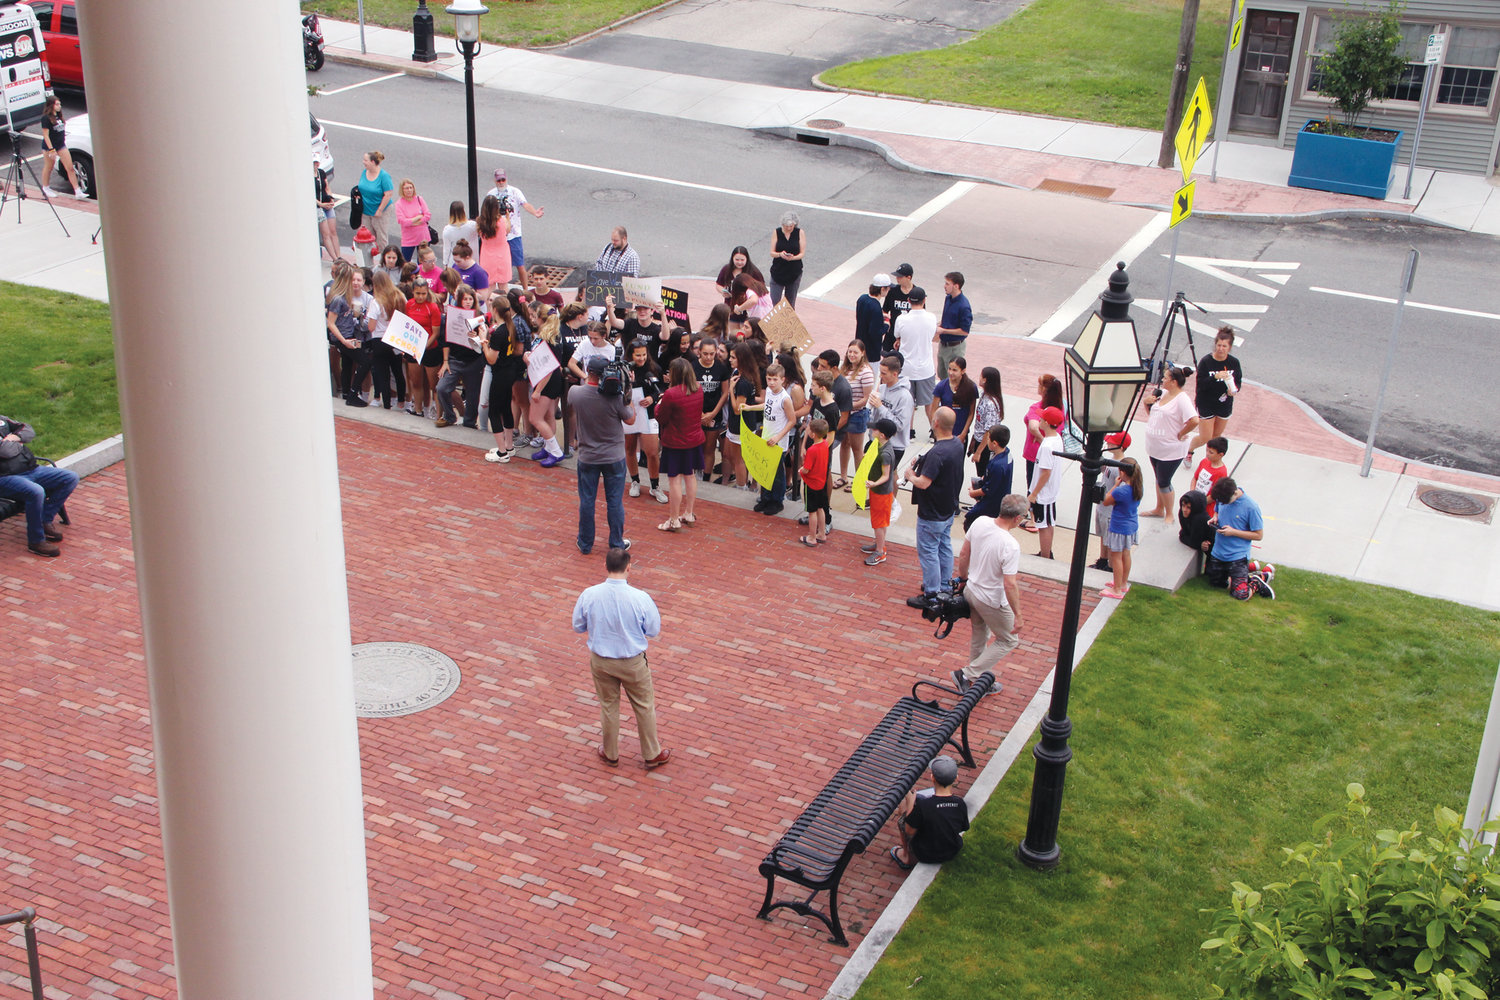 LETTING IT BE HEARD: Members of the Warwick sports community gather outside of Warwick City Hall on Wednesday morning.